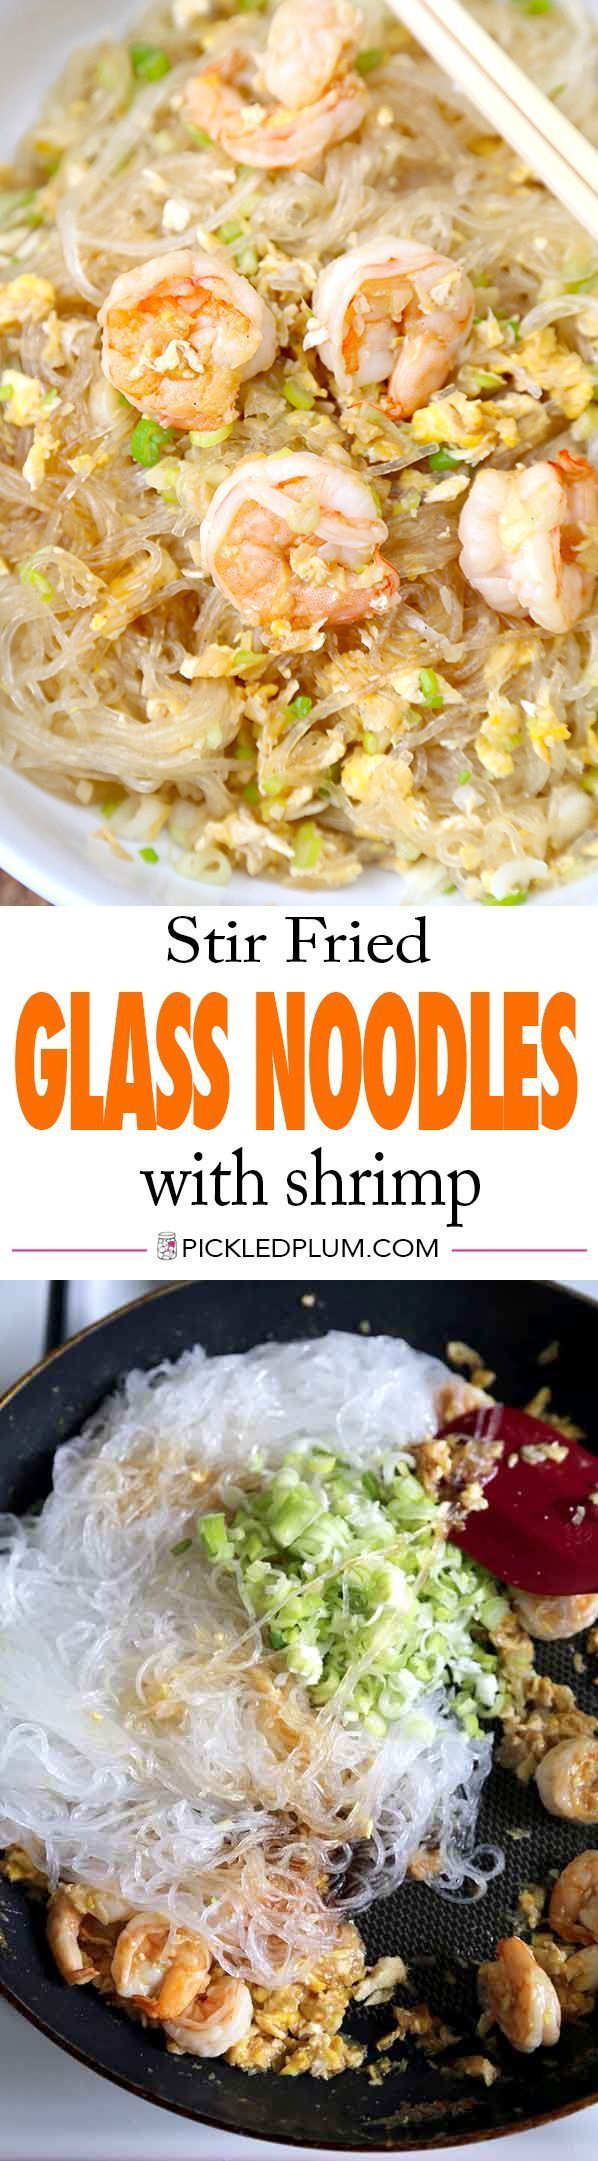 Stir Fried Glass Noodles with Shrimp and Egg - savory and nutty Asian style noodles. We love this for a quick dinner! Recipe, noodles, Asian, stir fry | pickledplum.com